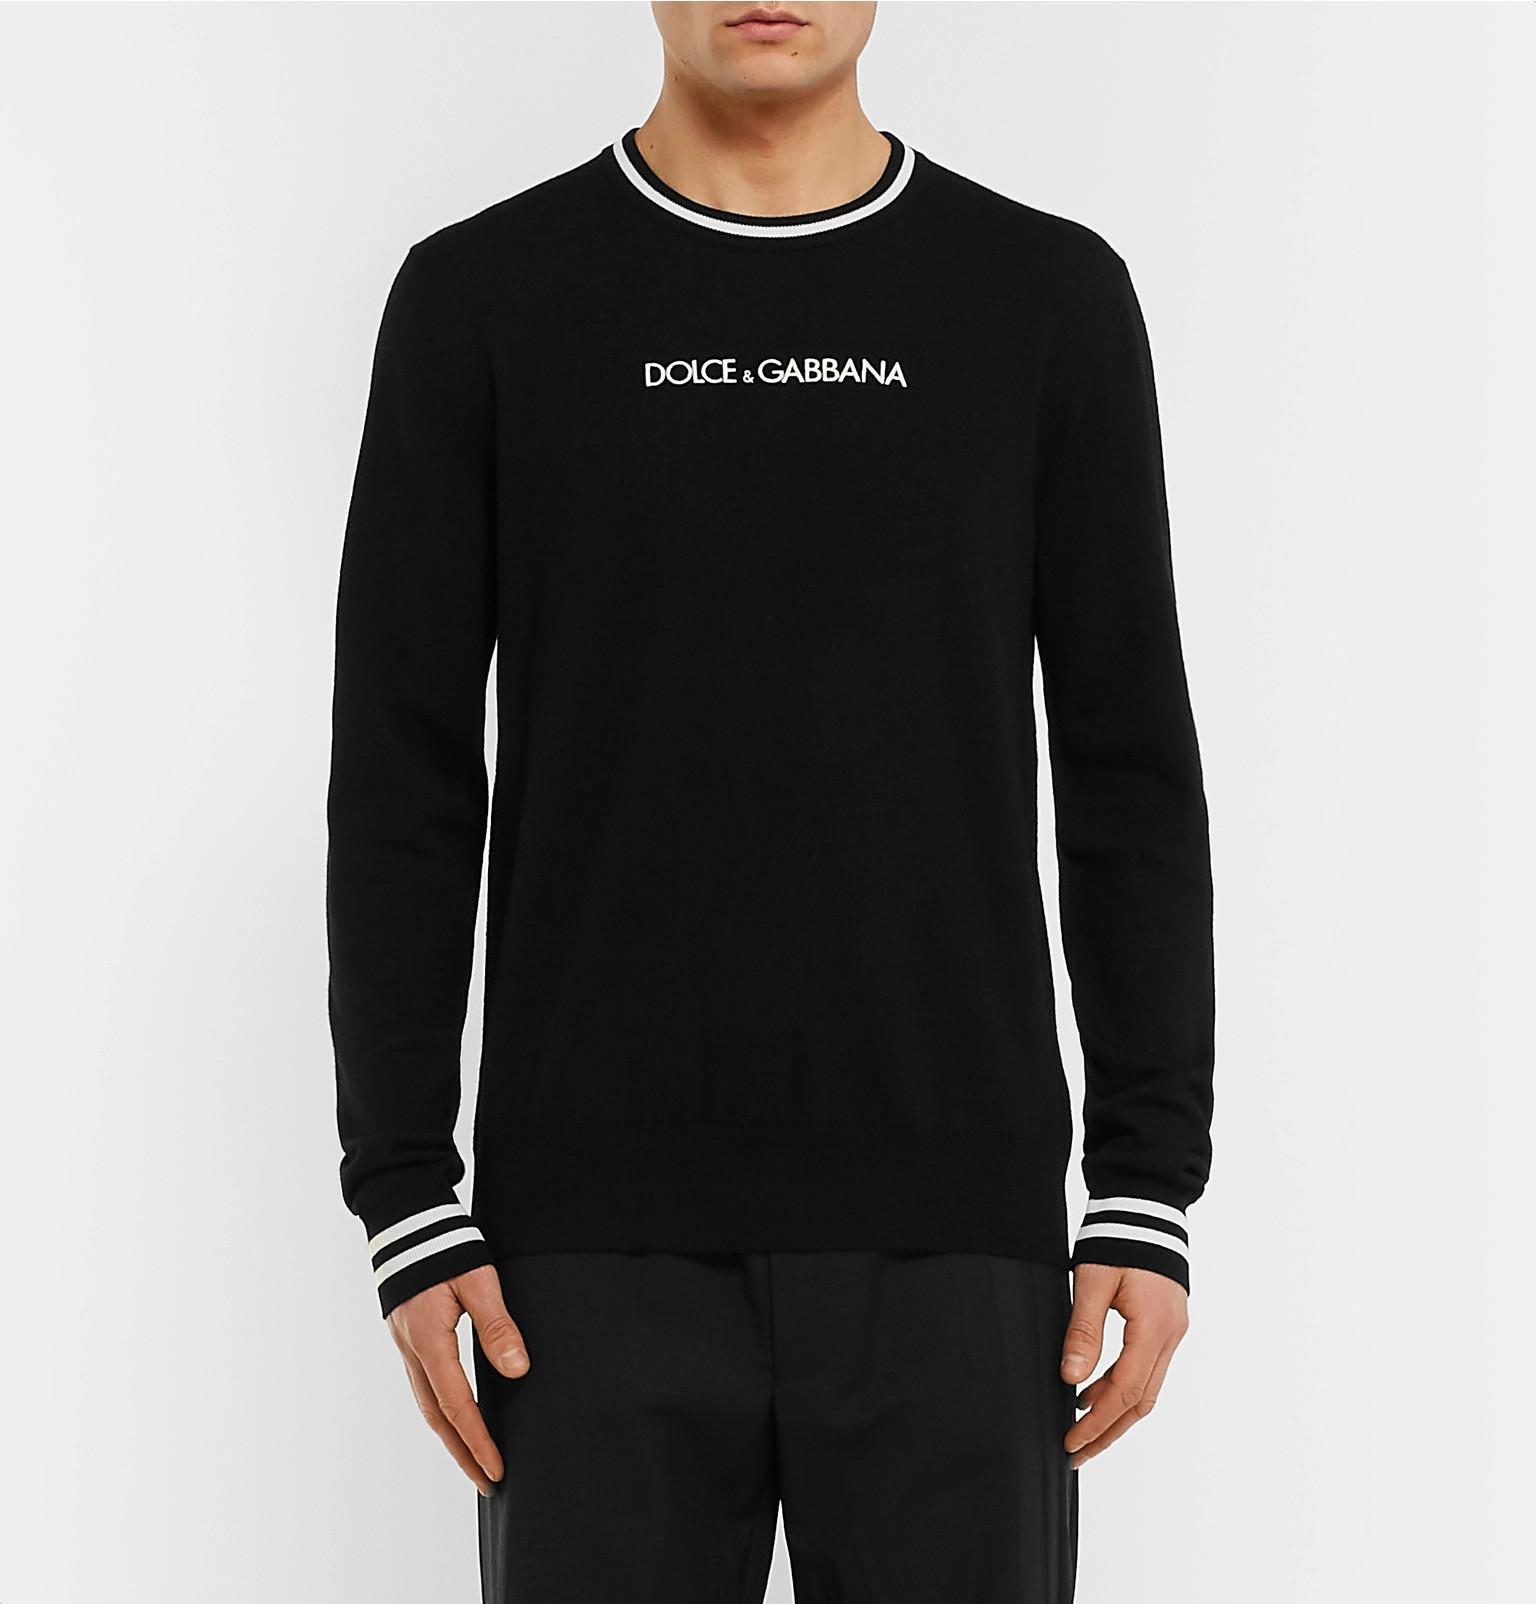 356d9b8b6 Lyst - Dolce   Gabbana Slim-fit Contrast-tipped Logo-embroidered ...